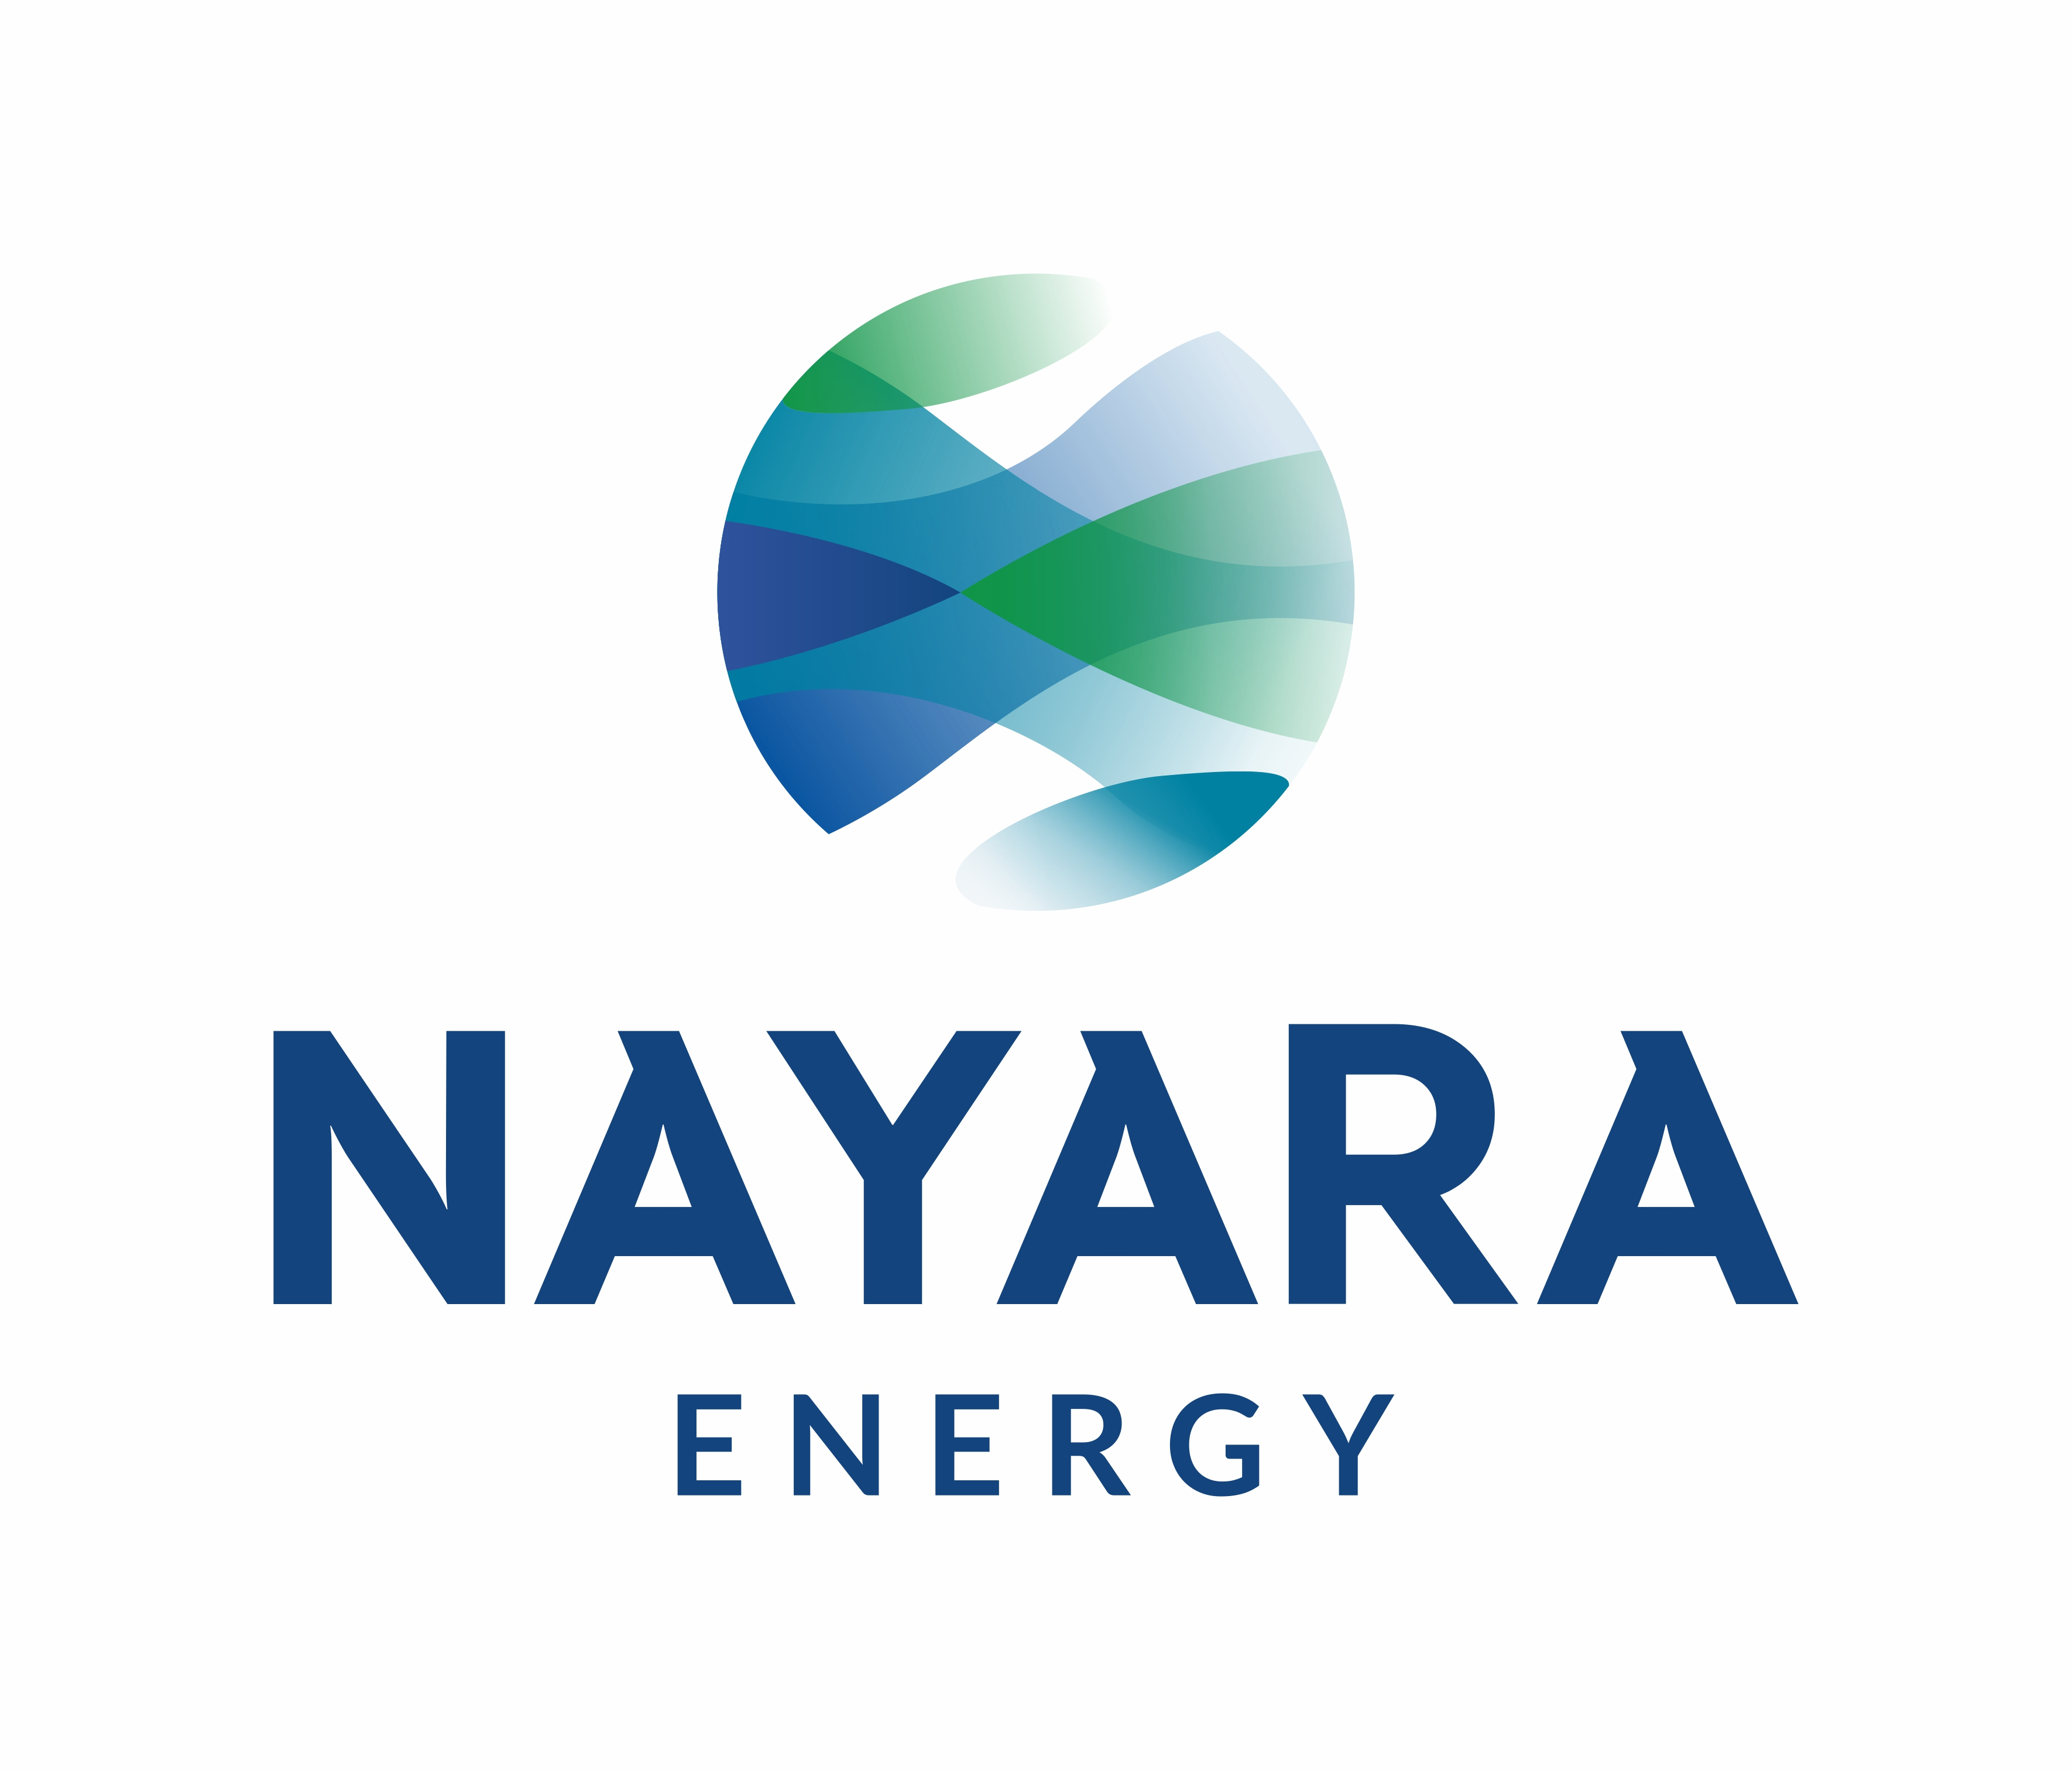 Nayara Energy - Wikipedia